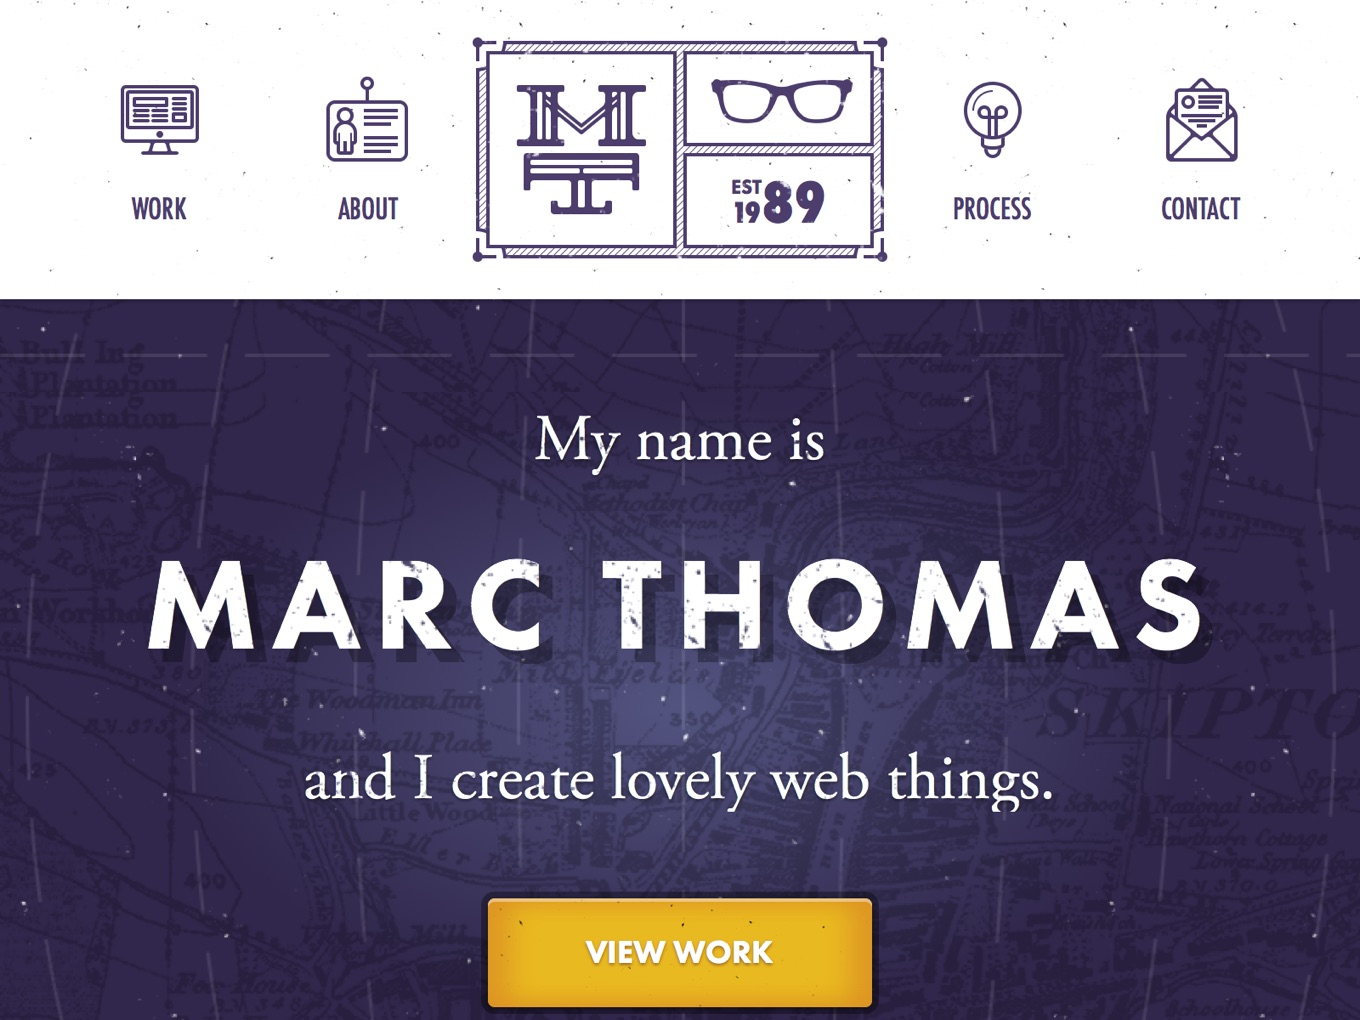 Marc Thomas - Freelance Digital Designer and Frontend Developer based in London, UK